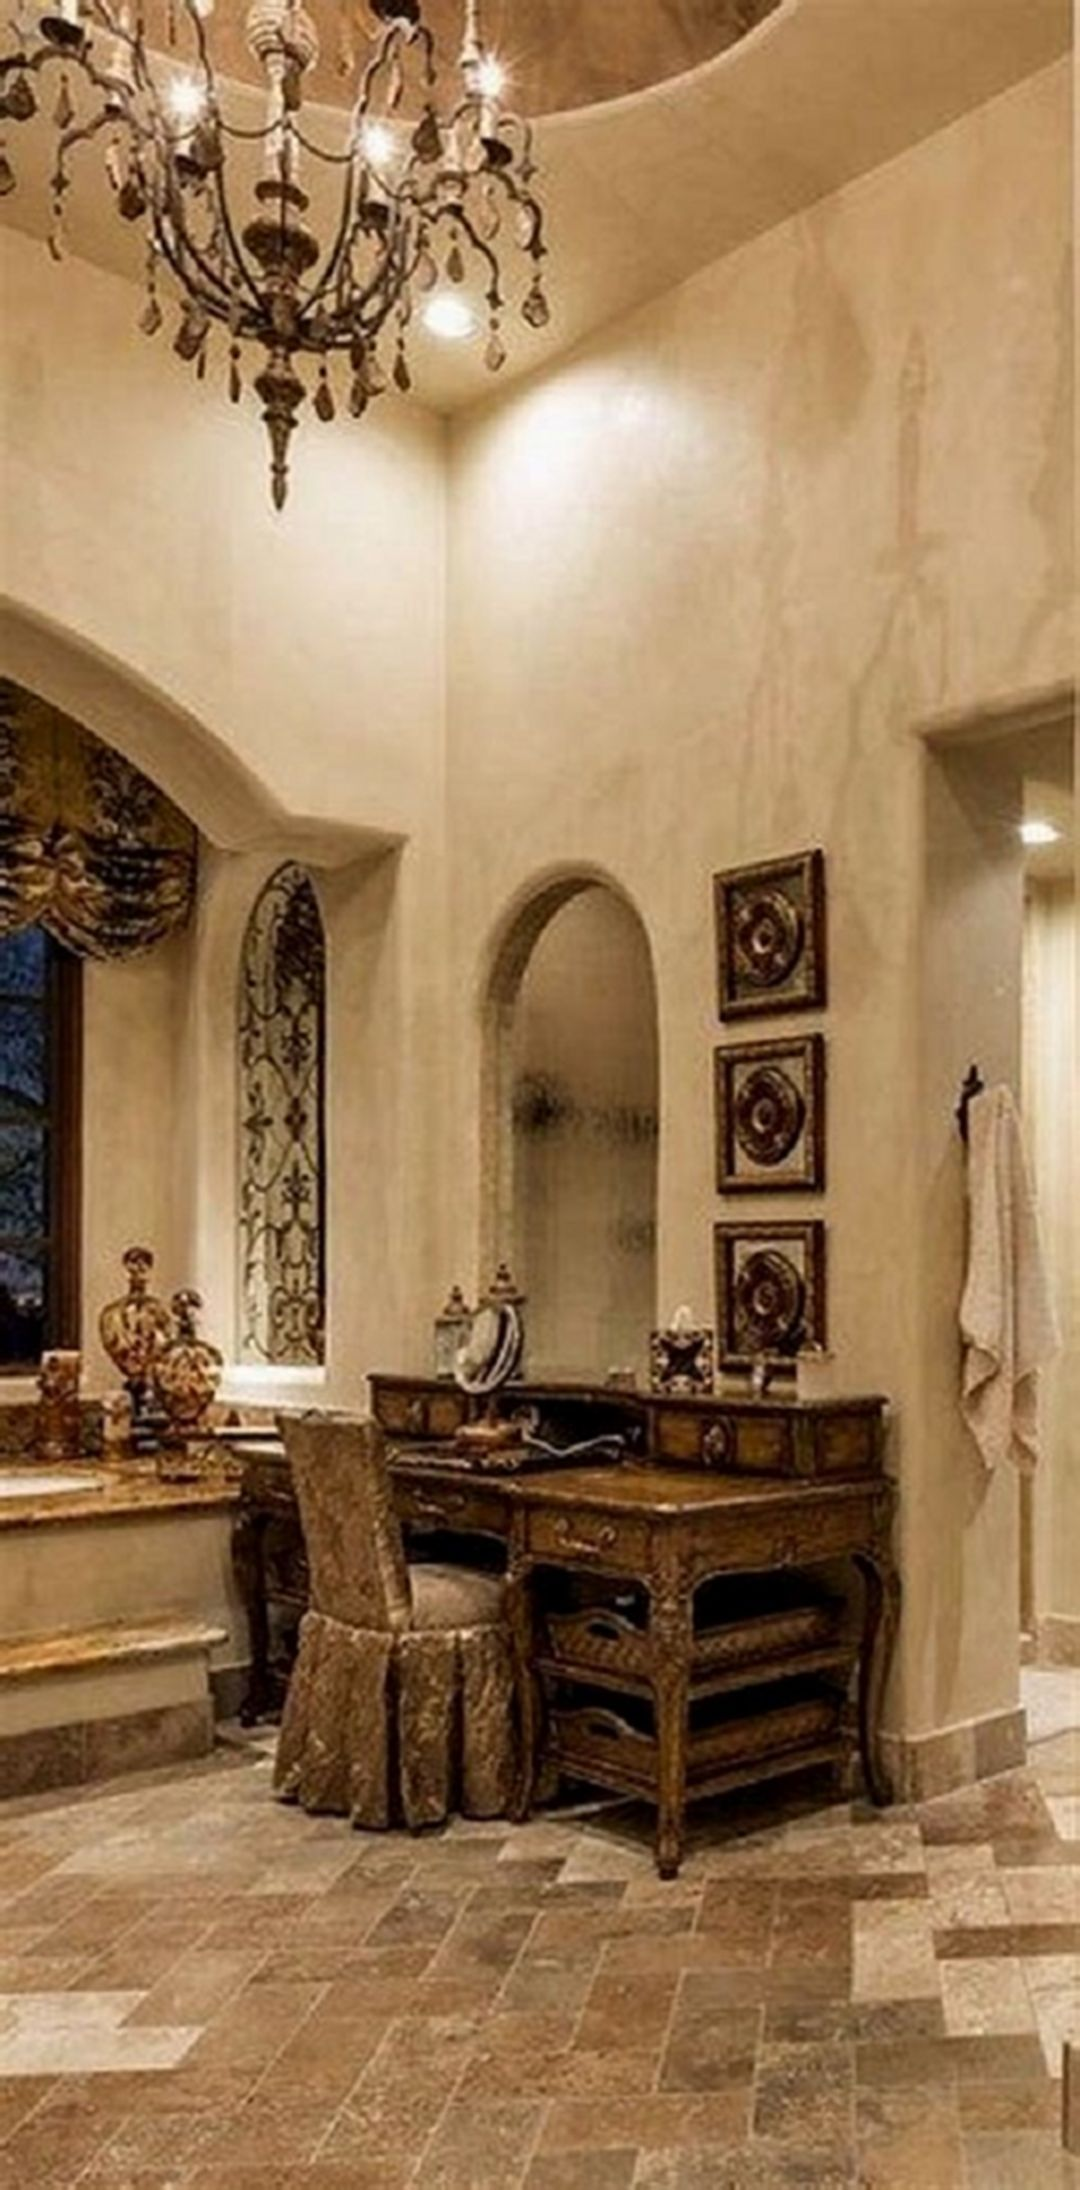 12 Inspirations For Home Improvement With Spanish Home Decorating Ideas: Inspiration Italian Home Decorating To Make Your Beautiful Home: 25+ Inspiration Italian